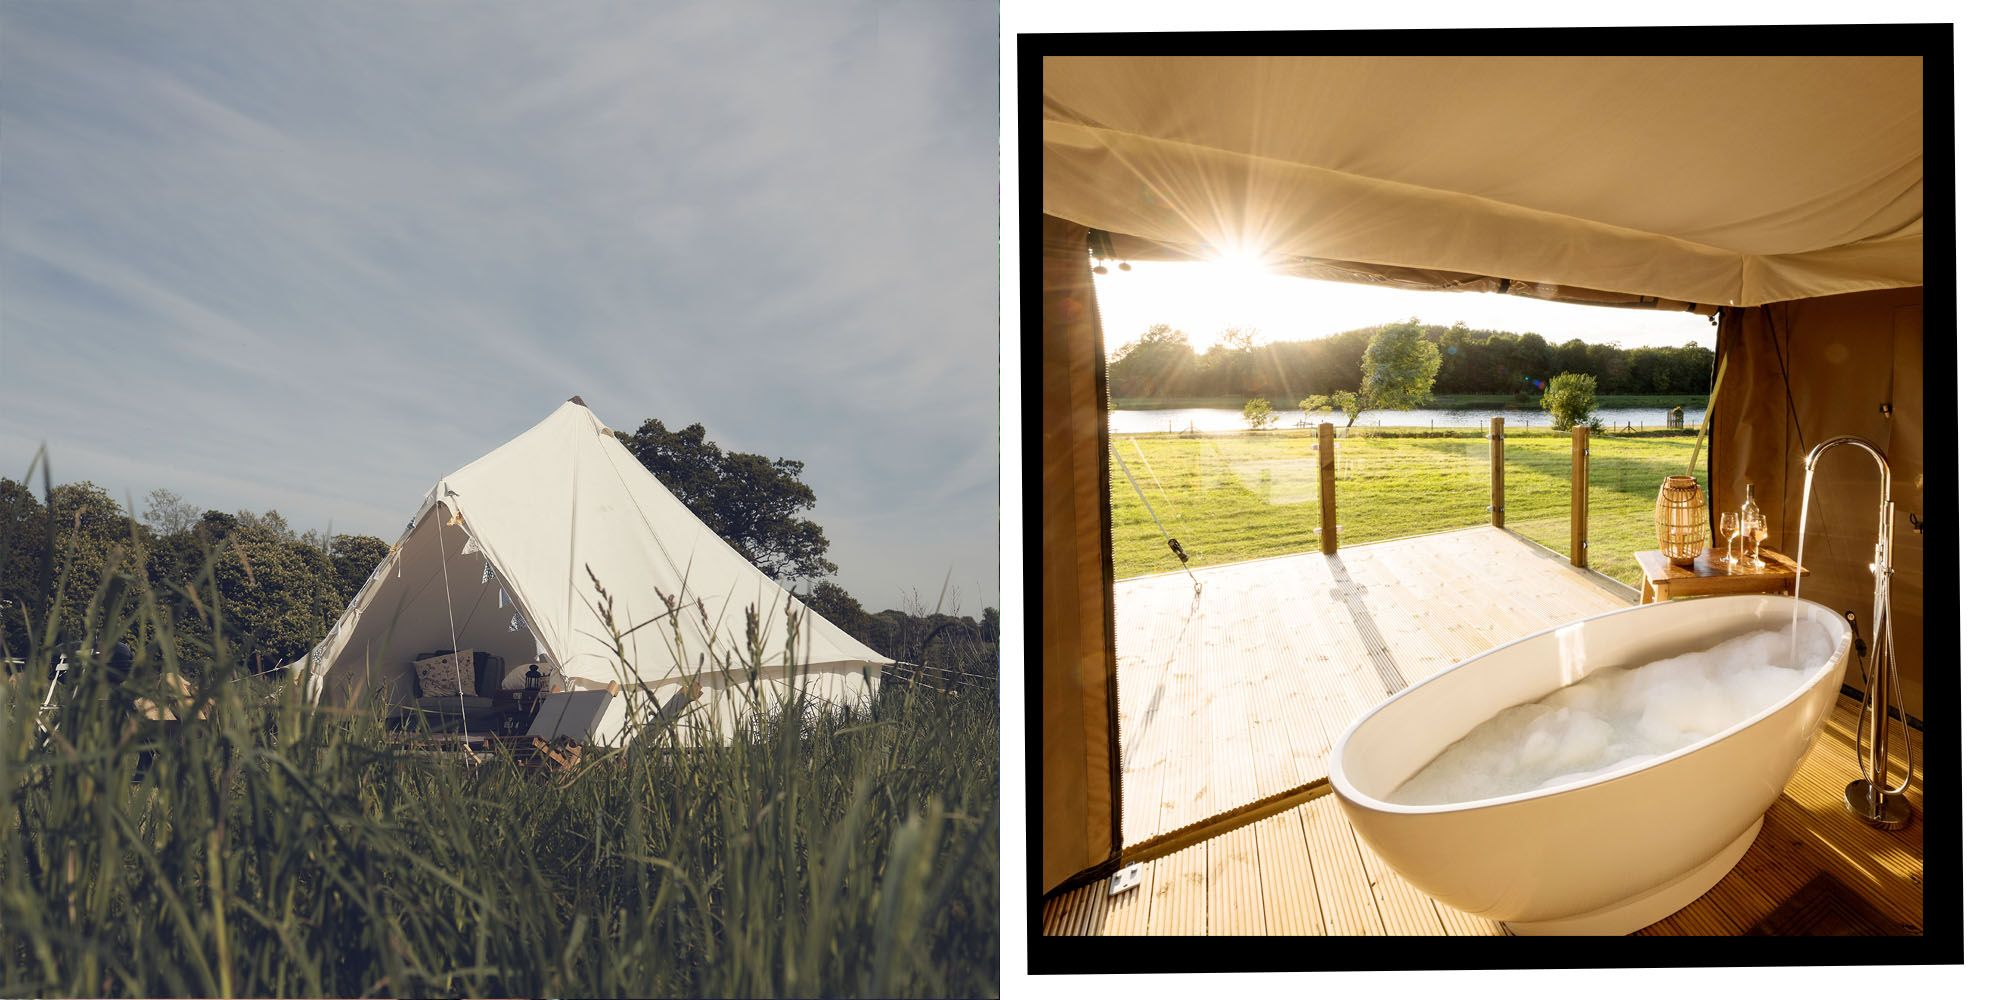 The 10 Best Glamping Sites In The UK: The Best Glampsites And Glamping Pods To Visit This Summer